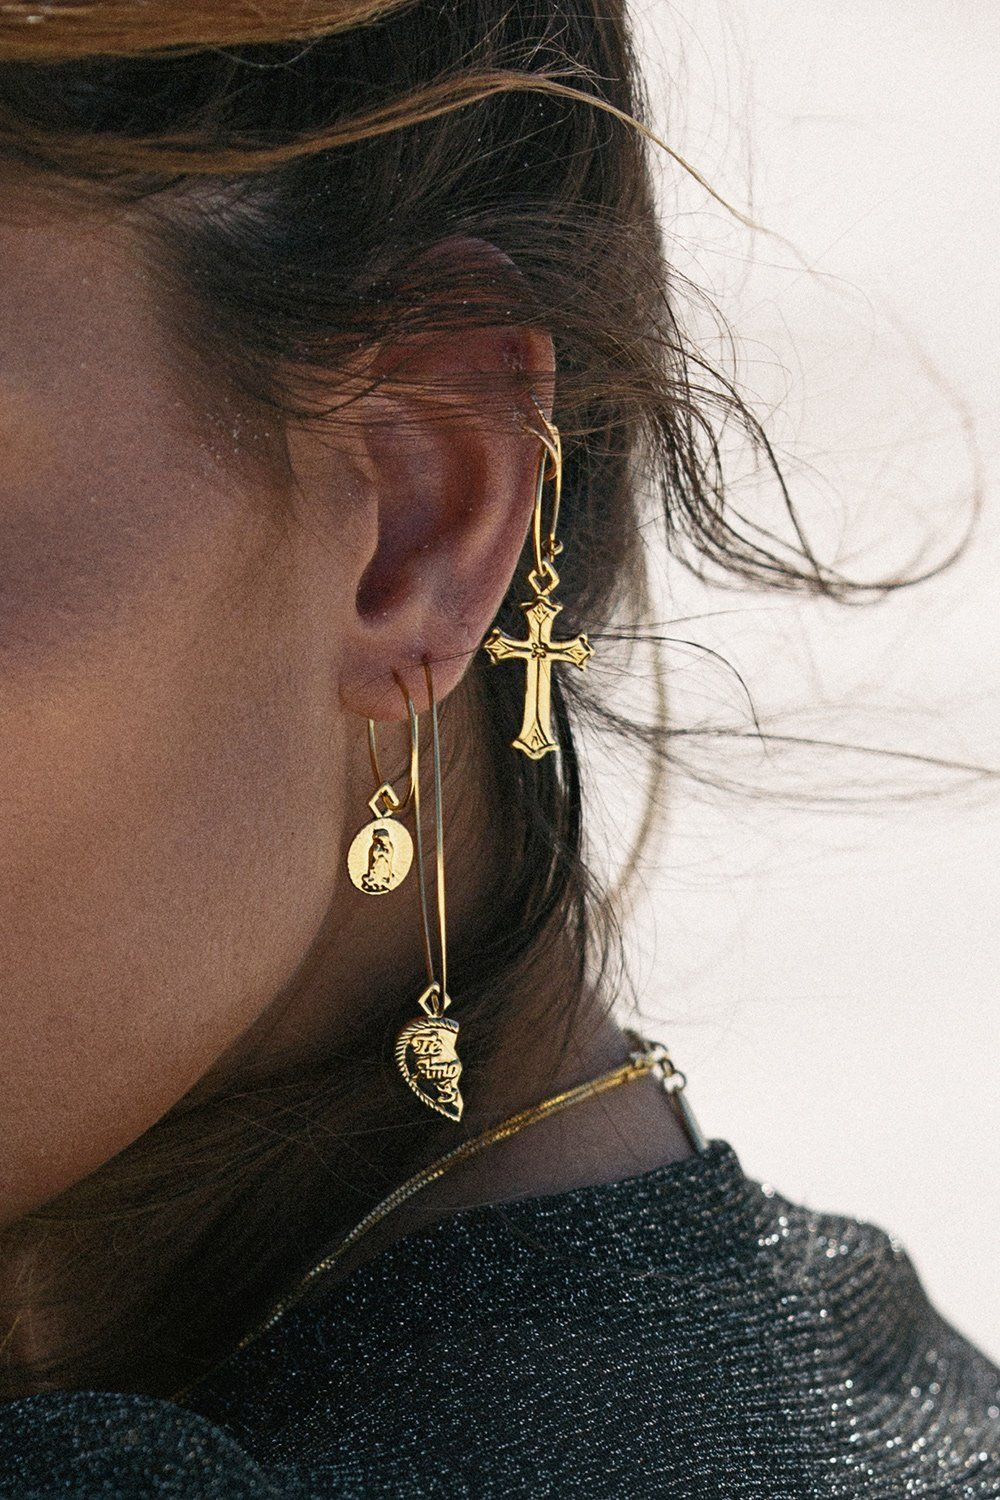 The Isidore Cross Hoops Are A Small Gold Toned Wire Hoop With Large Hanging Charm Detailing By Luv Aj X Sabo Luxe Please Note We Do Not Accept